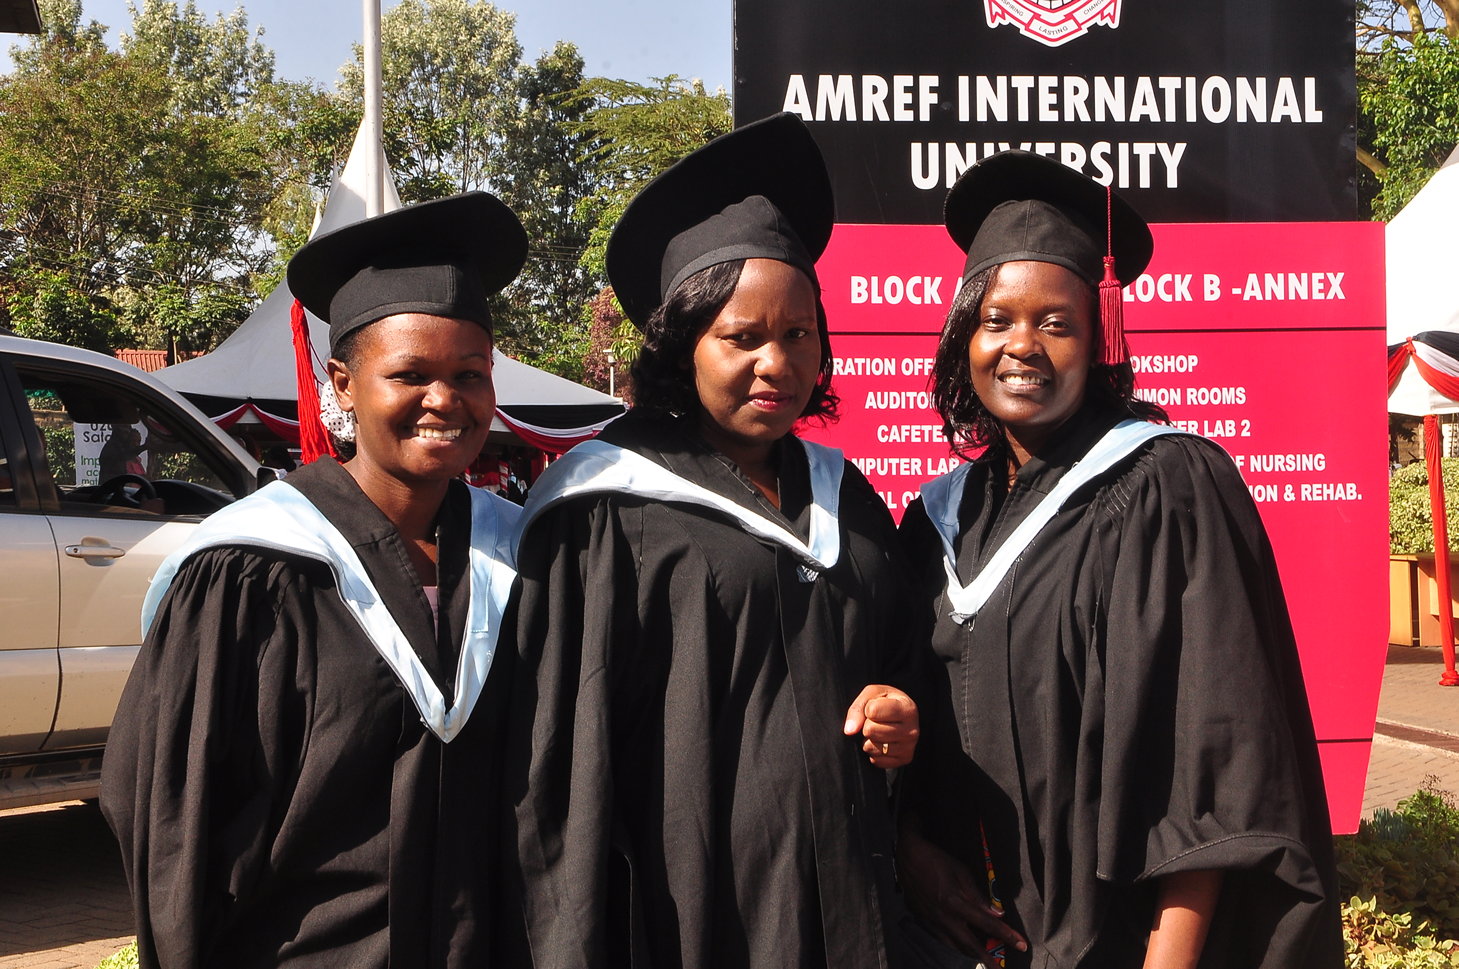 Amref International University Graduation